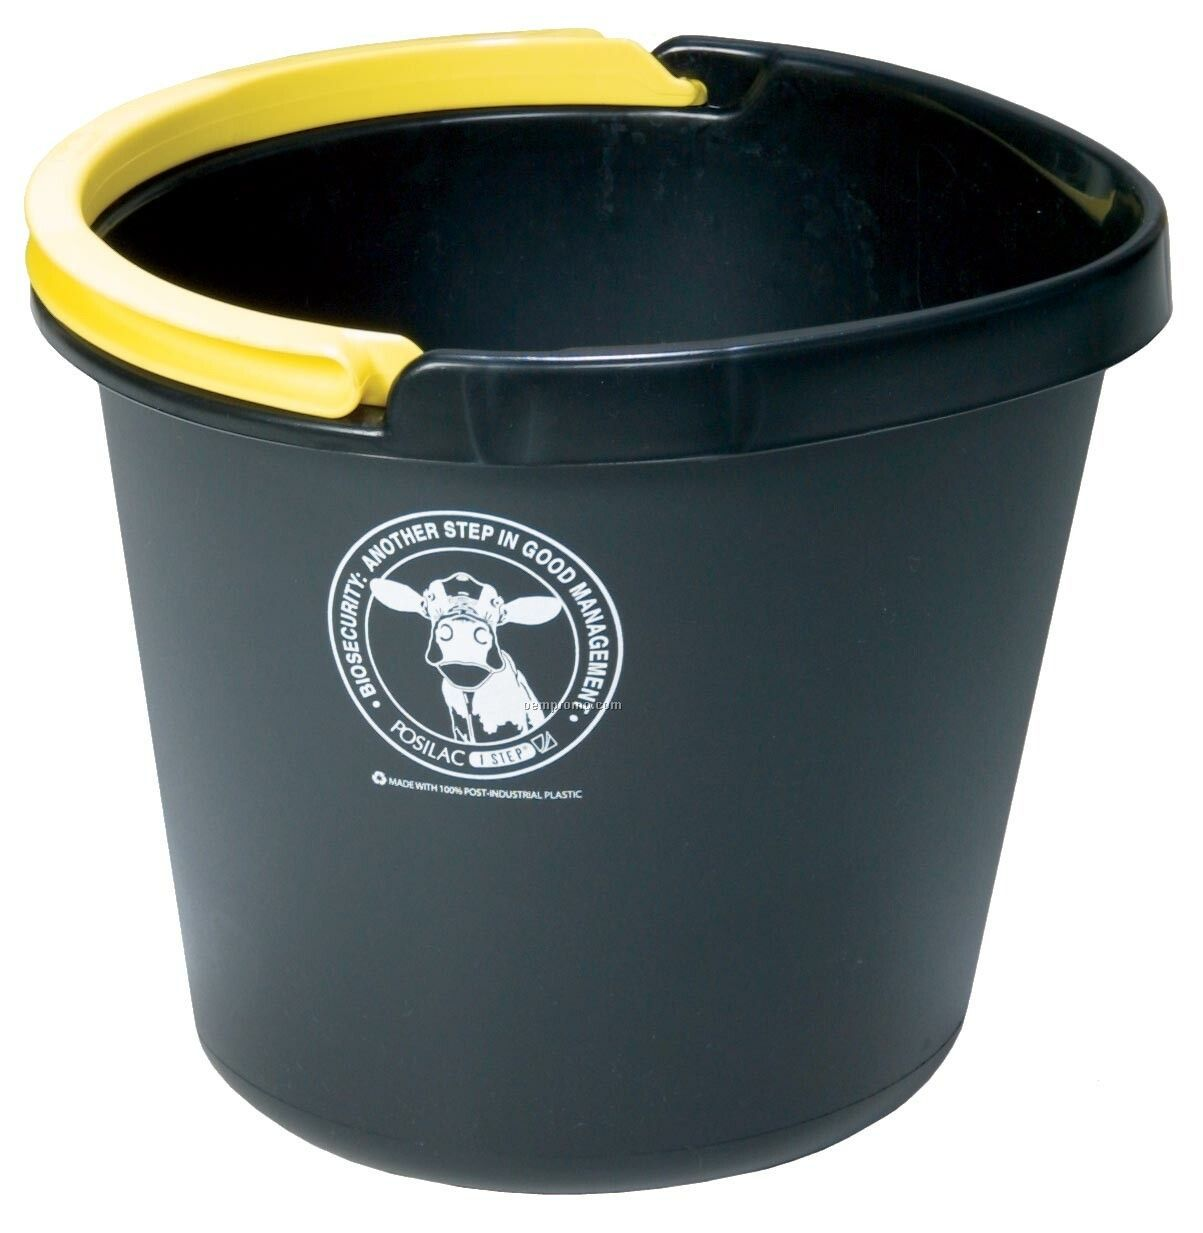 3 1/2 Gallon Recycled Ultra Pail